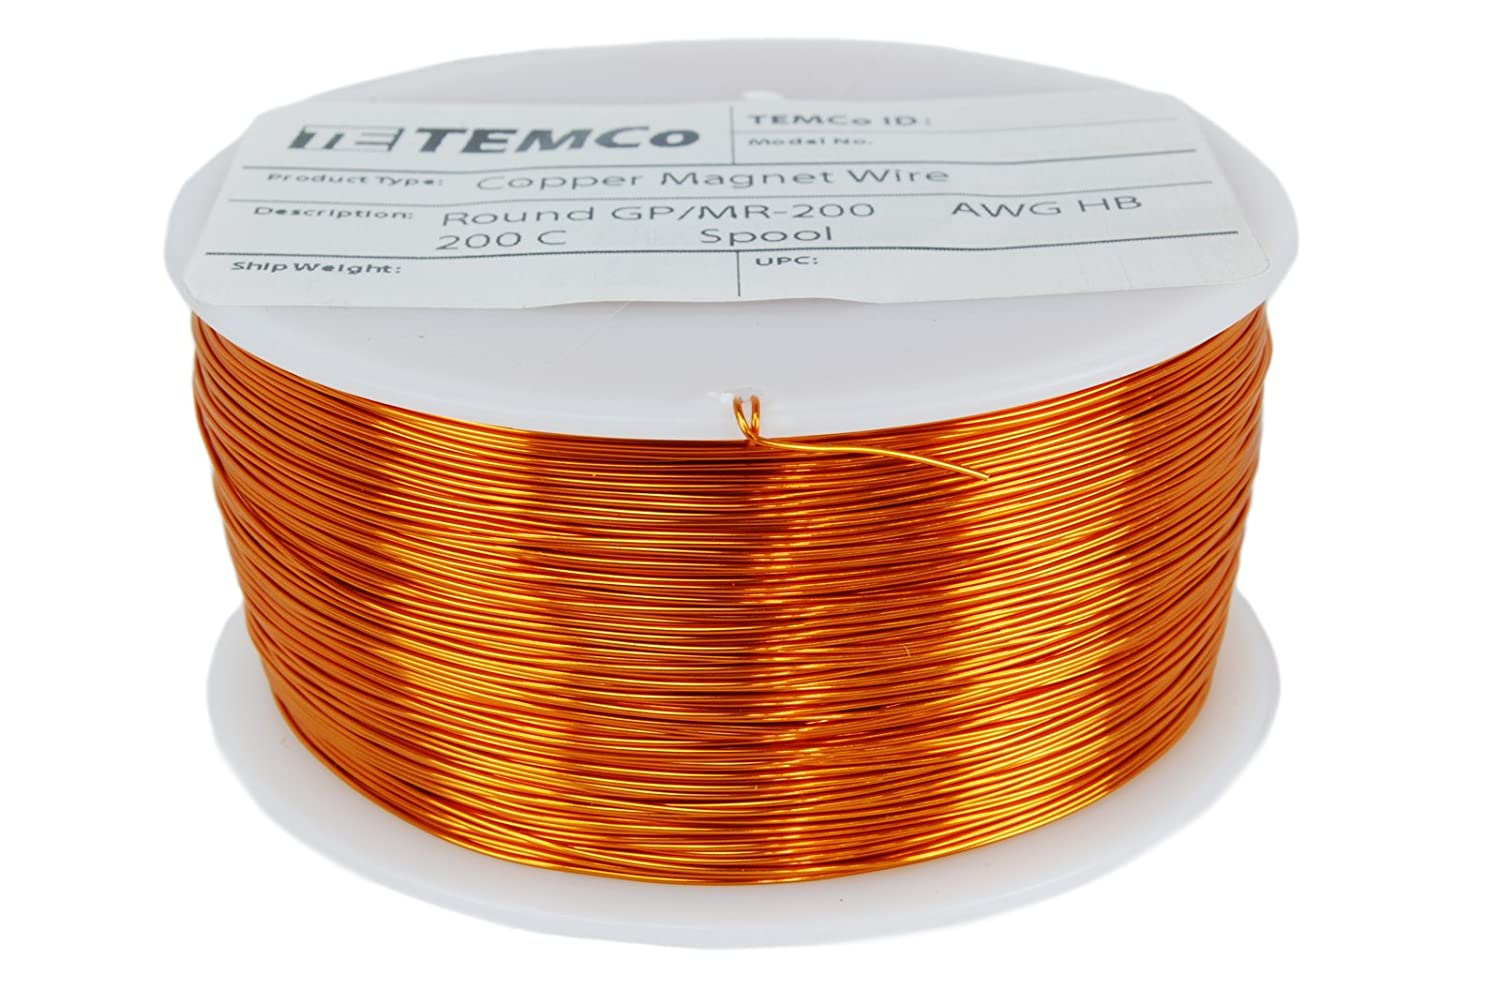 Amazon temco 29 awg copper magnet wire 1 lb 2465 ft 200c amazon temco 29 awg copper magnet wire 1 lb 2465 ft 200c magnetic coil winding home improvement greentooth Images